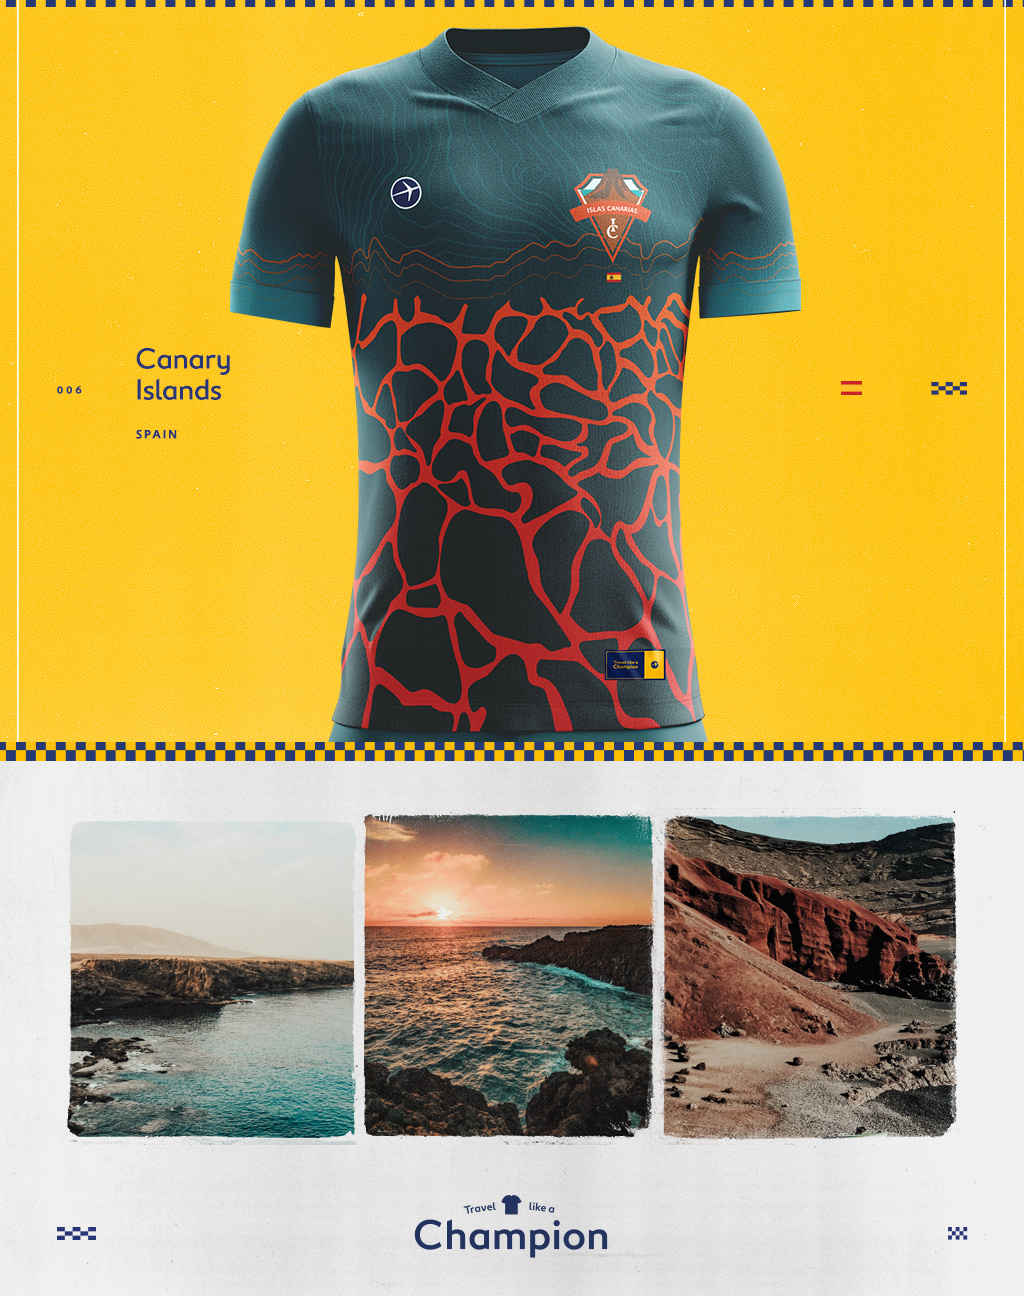 soccer jersey design inspired by scenes of the canary islands